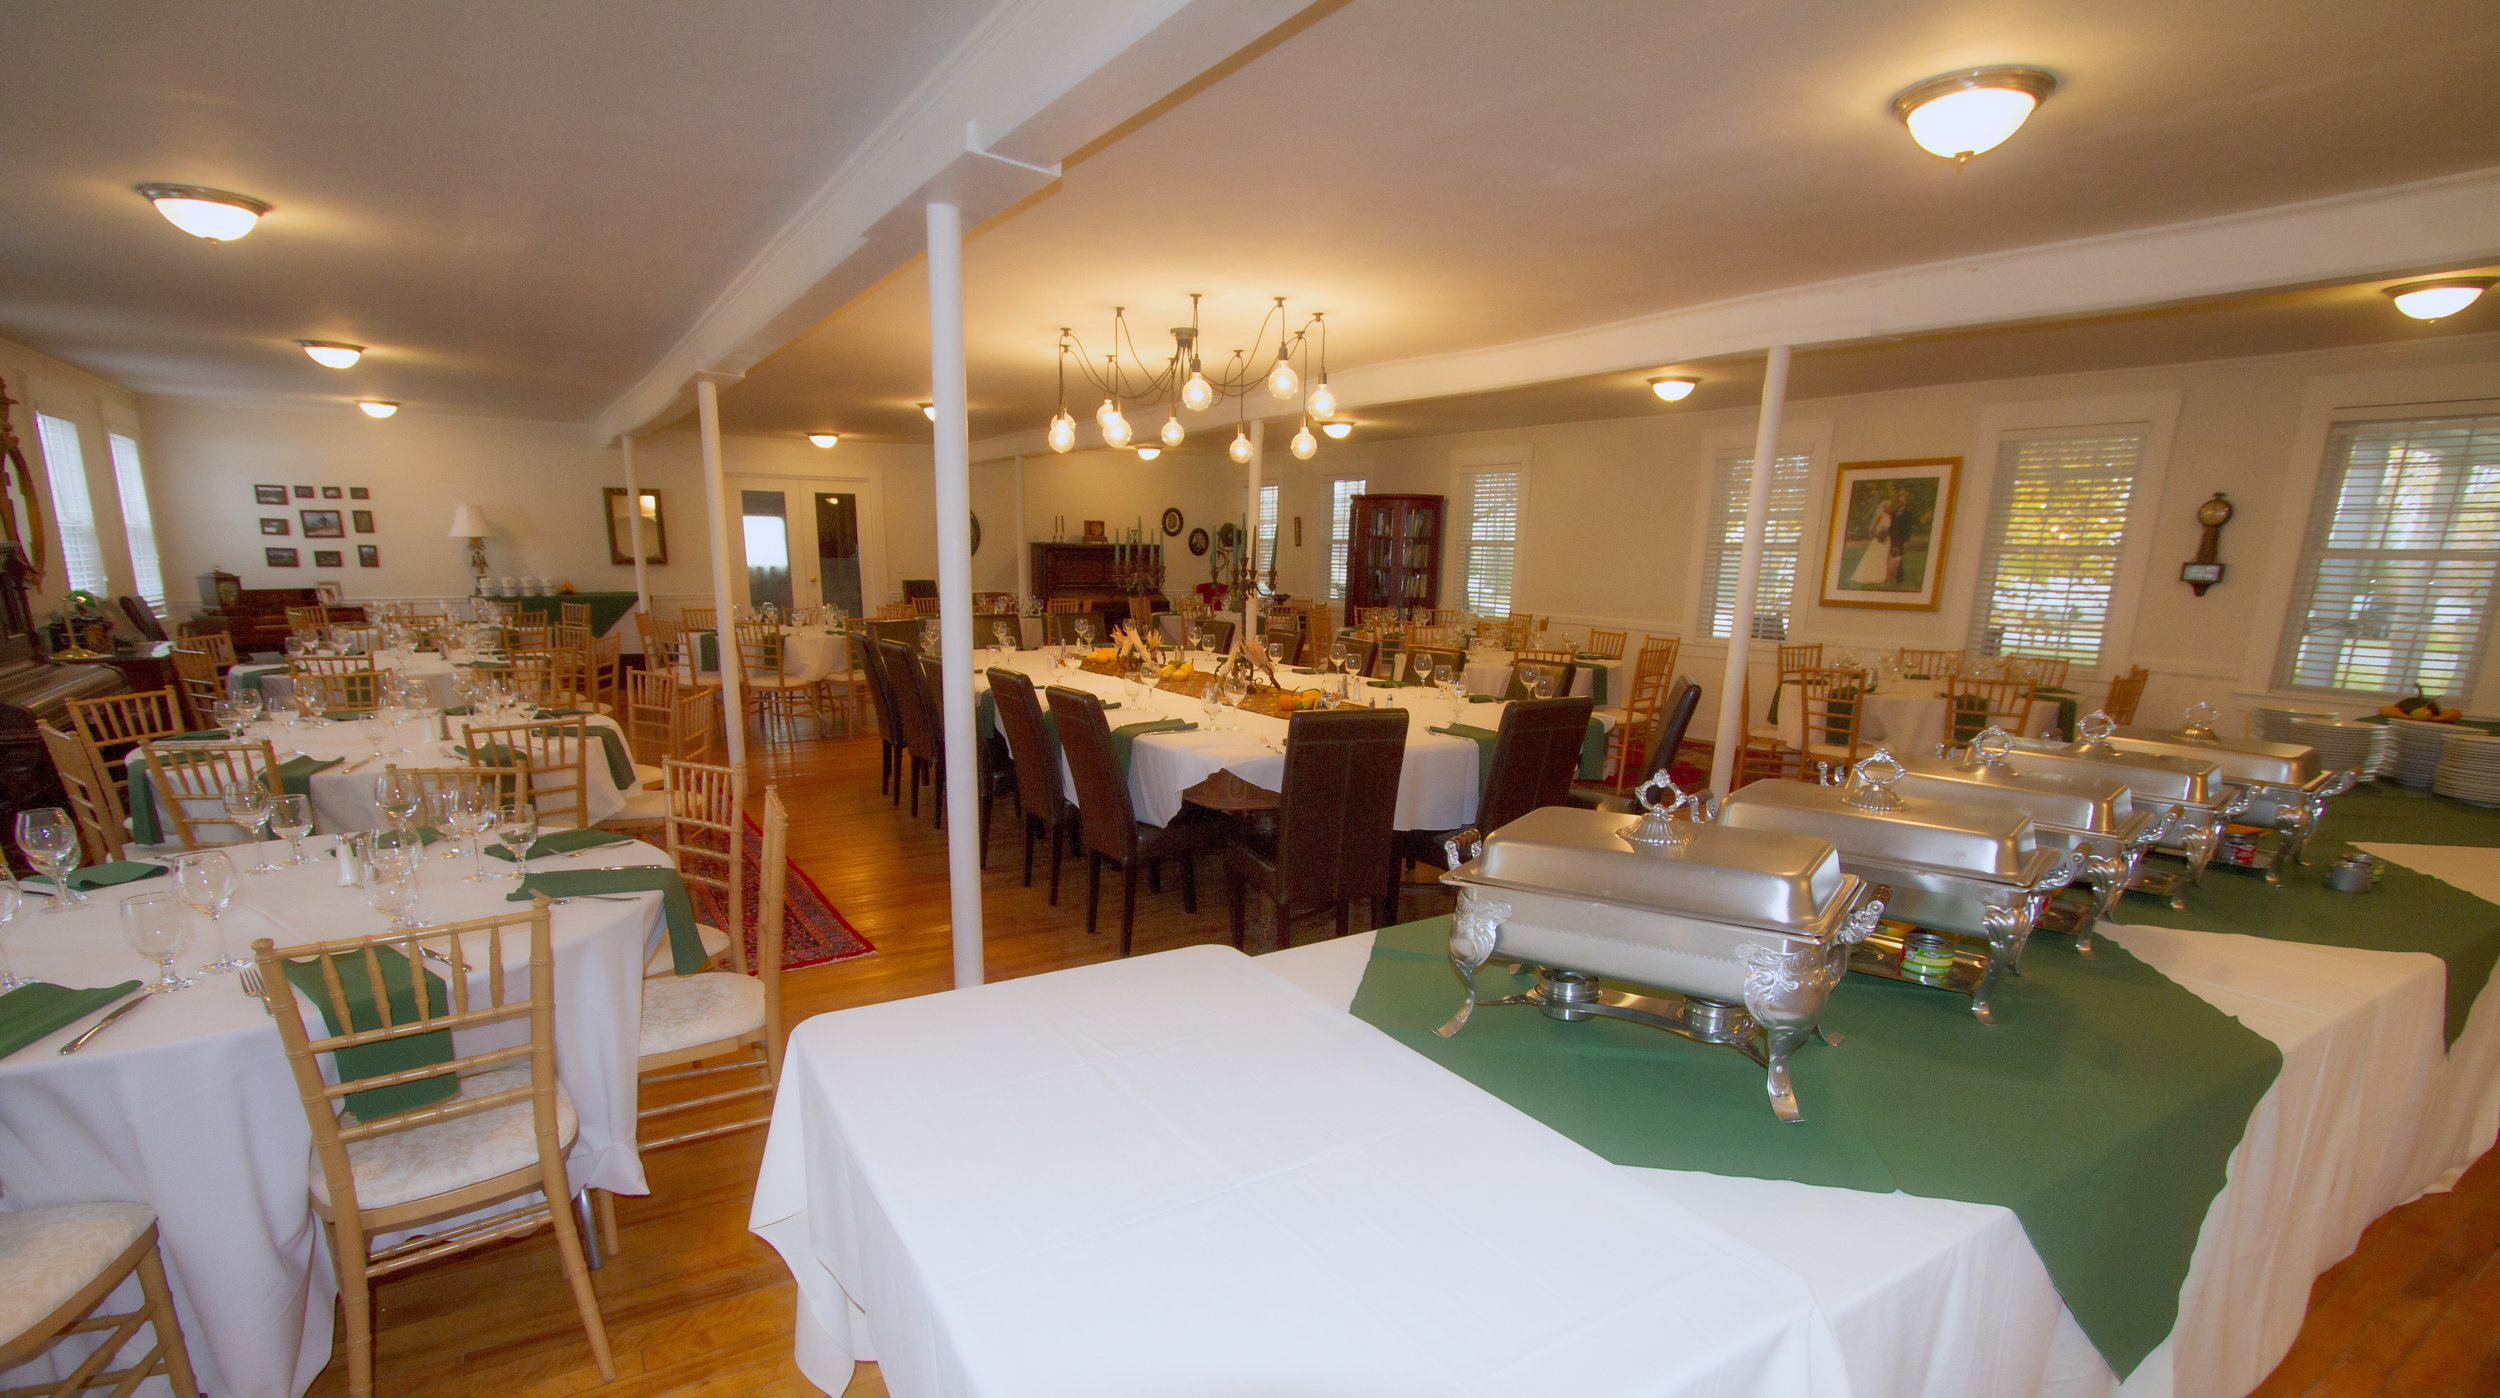 Dining hall perfect for weddings and functions